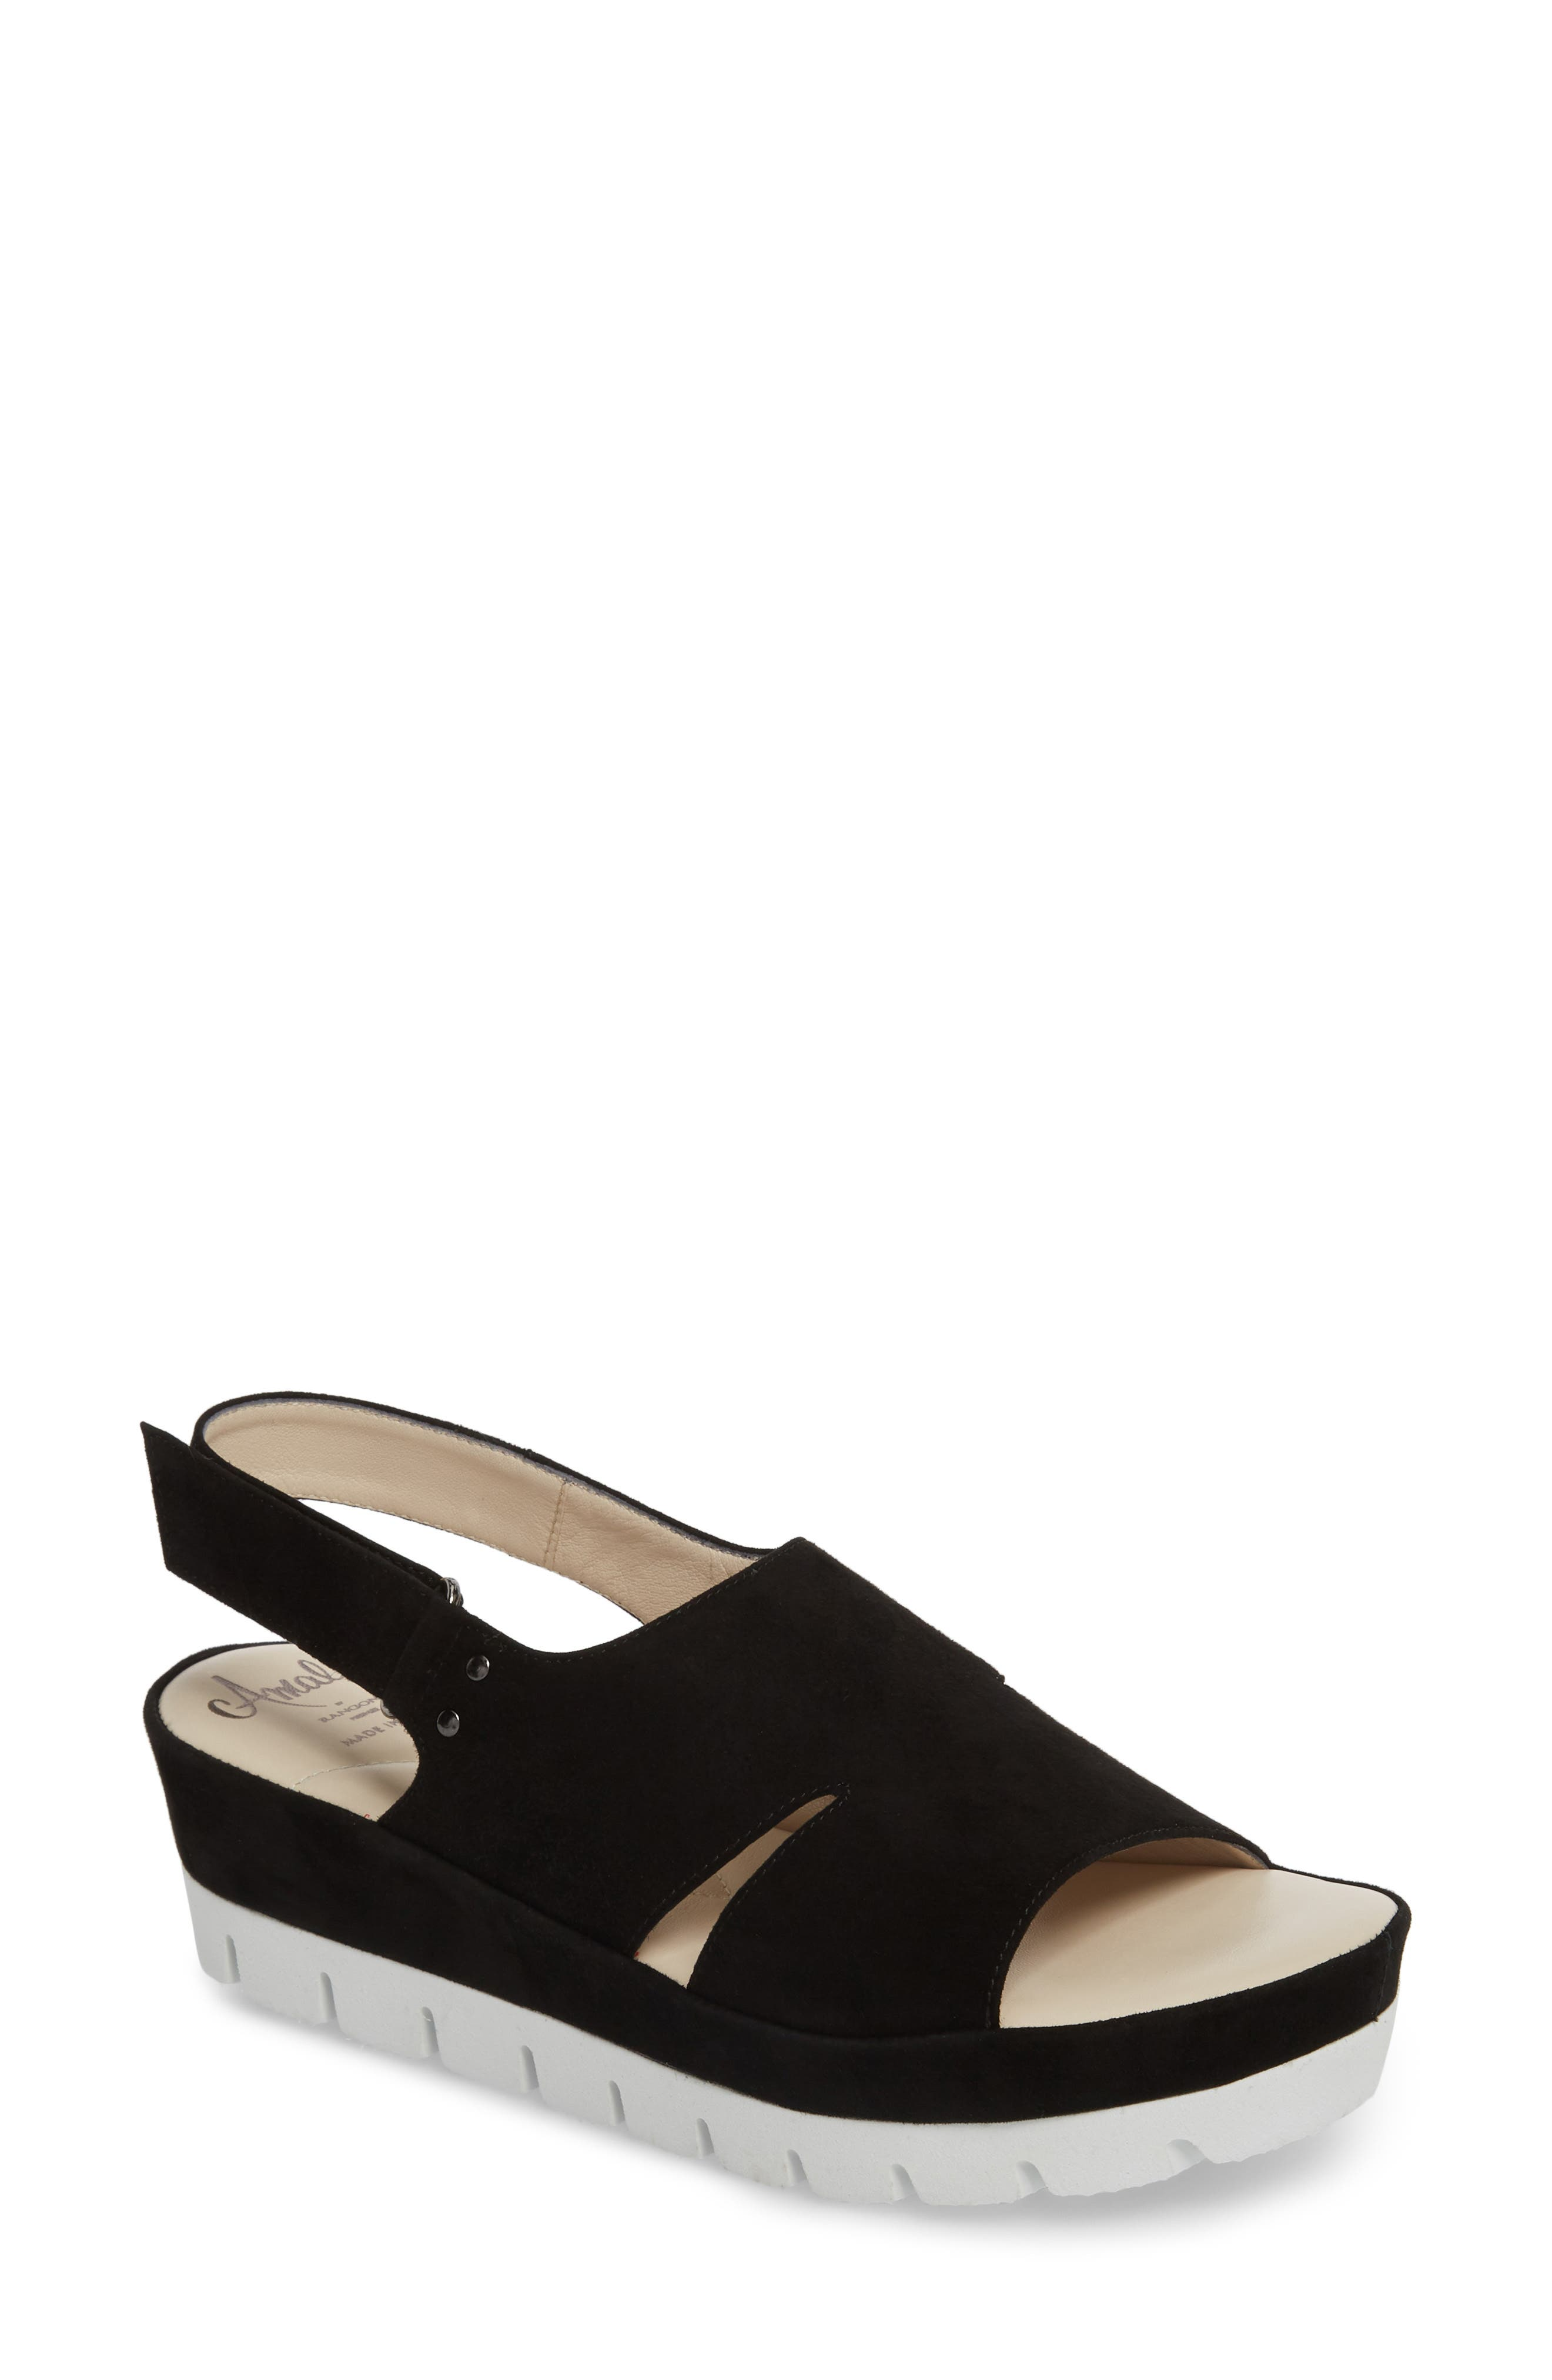 Bergamotto Slingback Wedge Sandal,                         Main,                         color, BLACK SUEDE